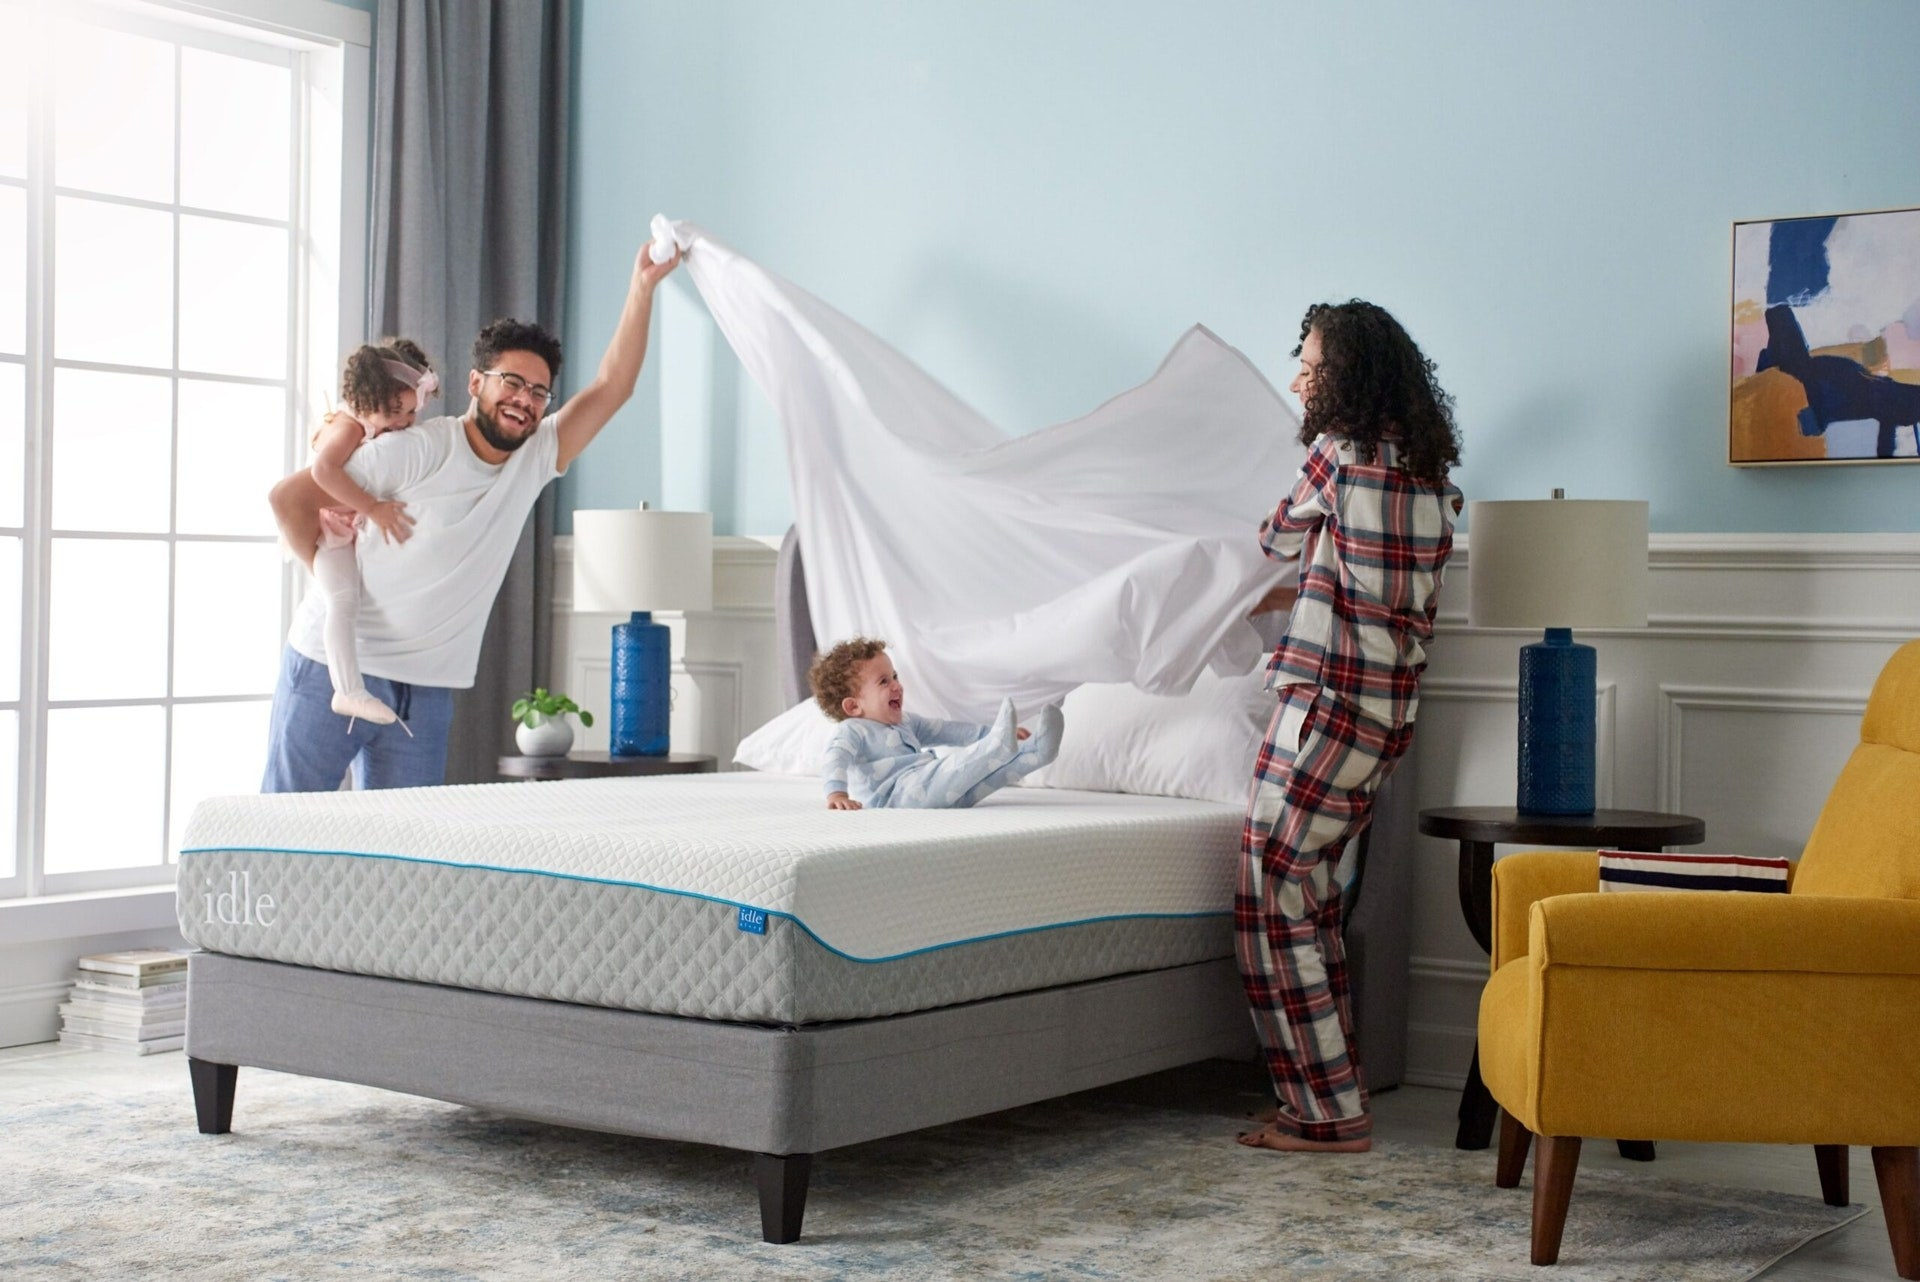 a family laughing while making their bed